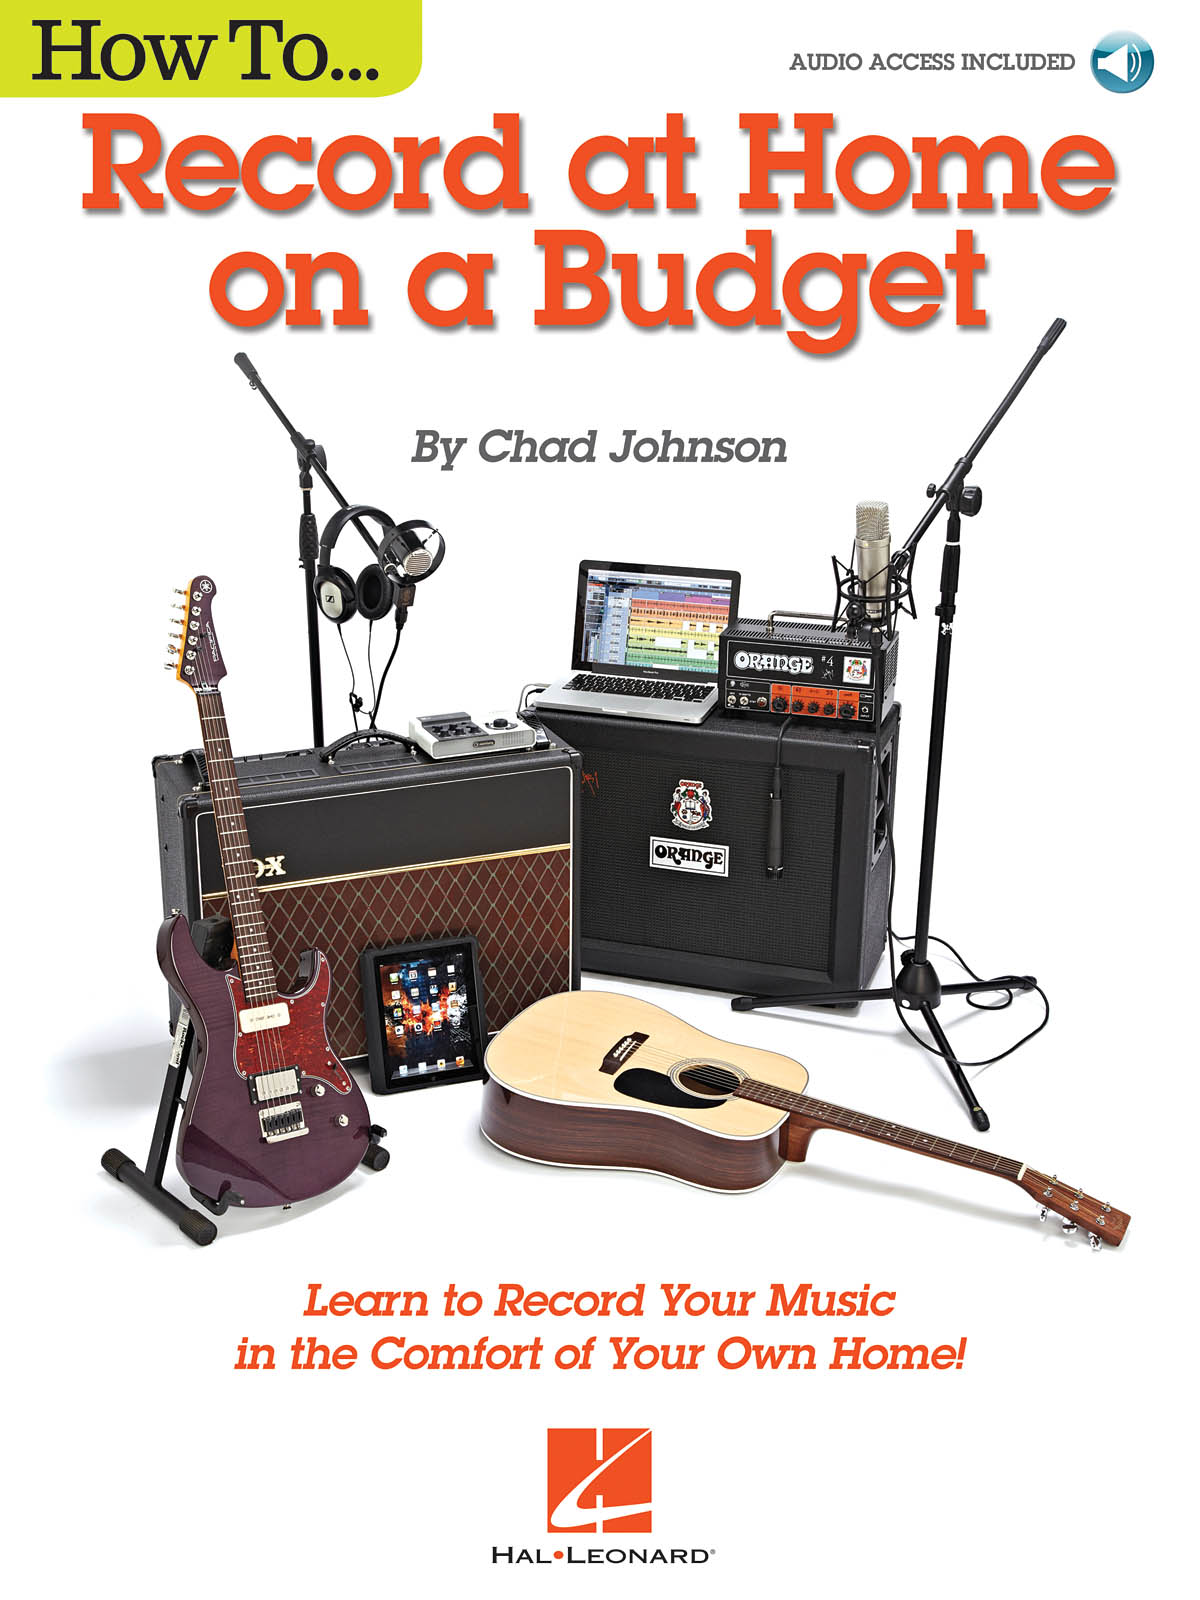 Chad Johnson: How to Record at Home on a Budget: Reference Books: Reference